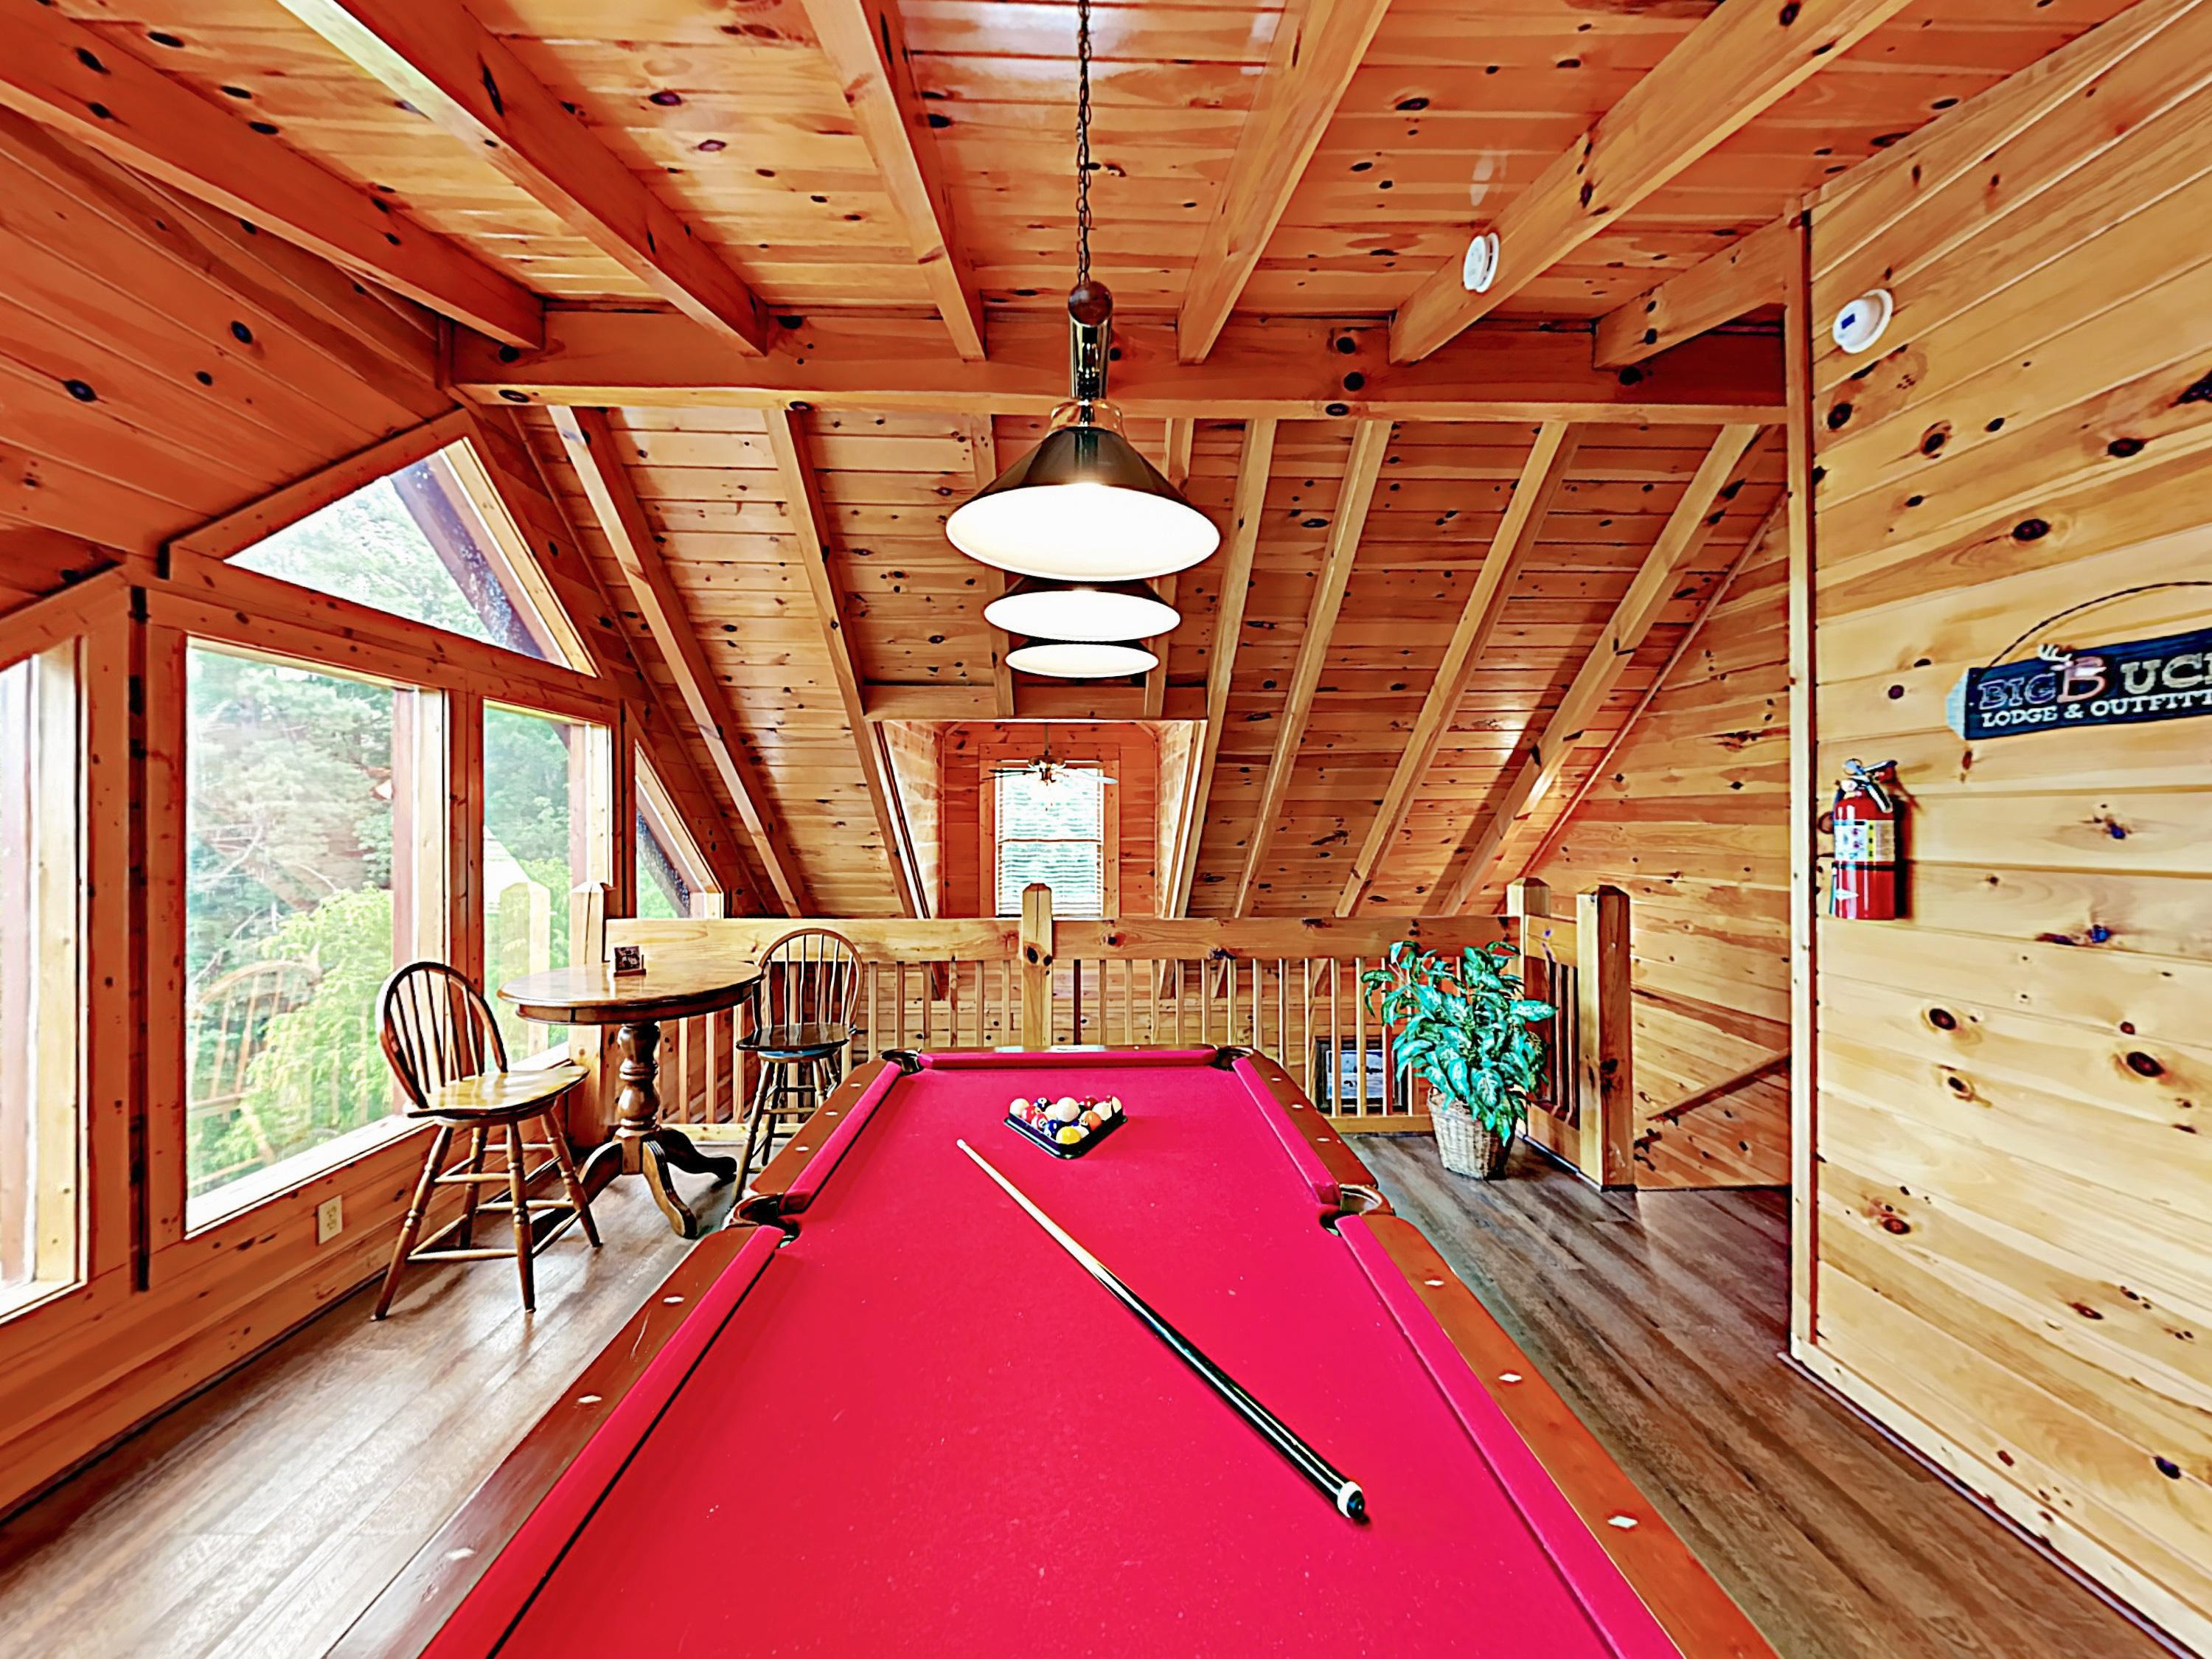 A pool table in the 2nd-floor loft provides hours of family fun.